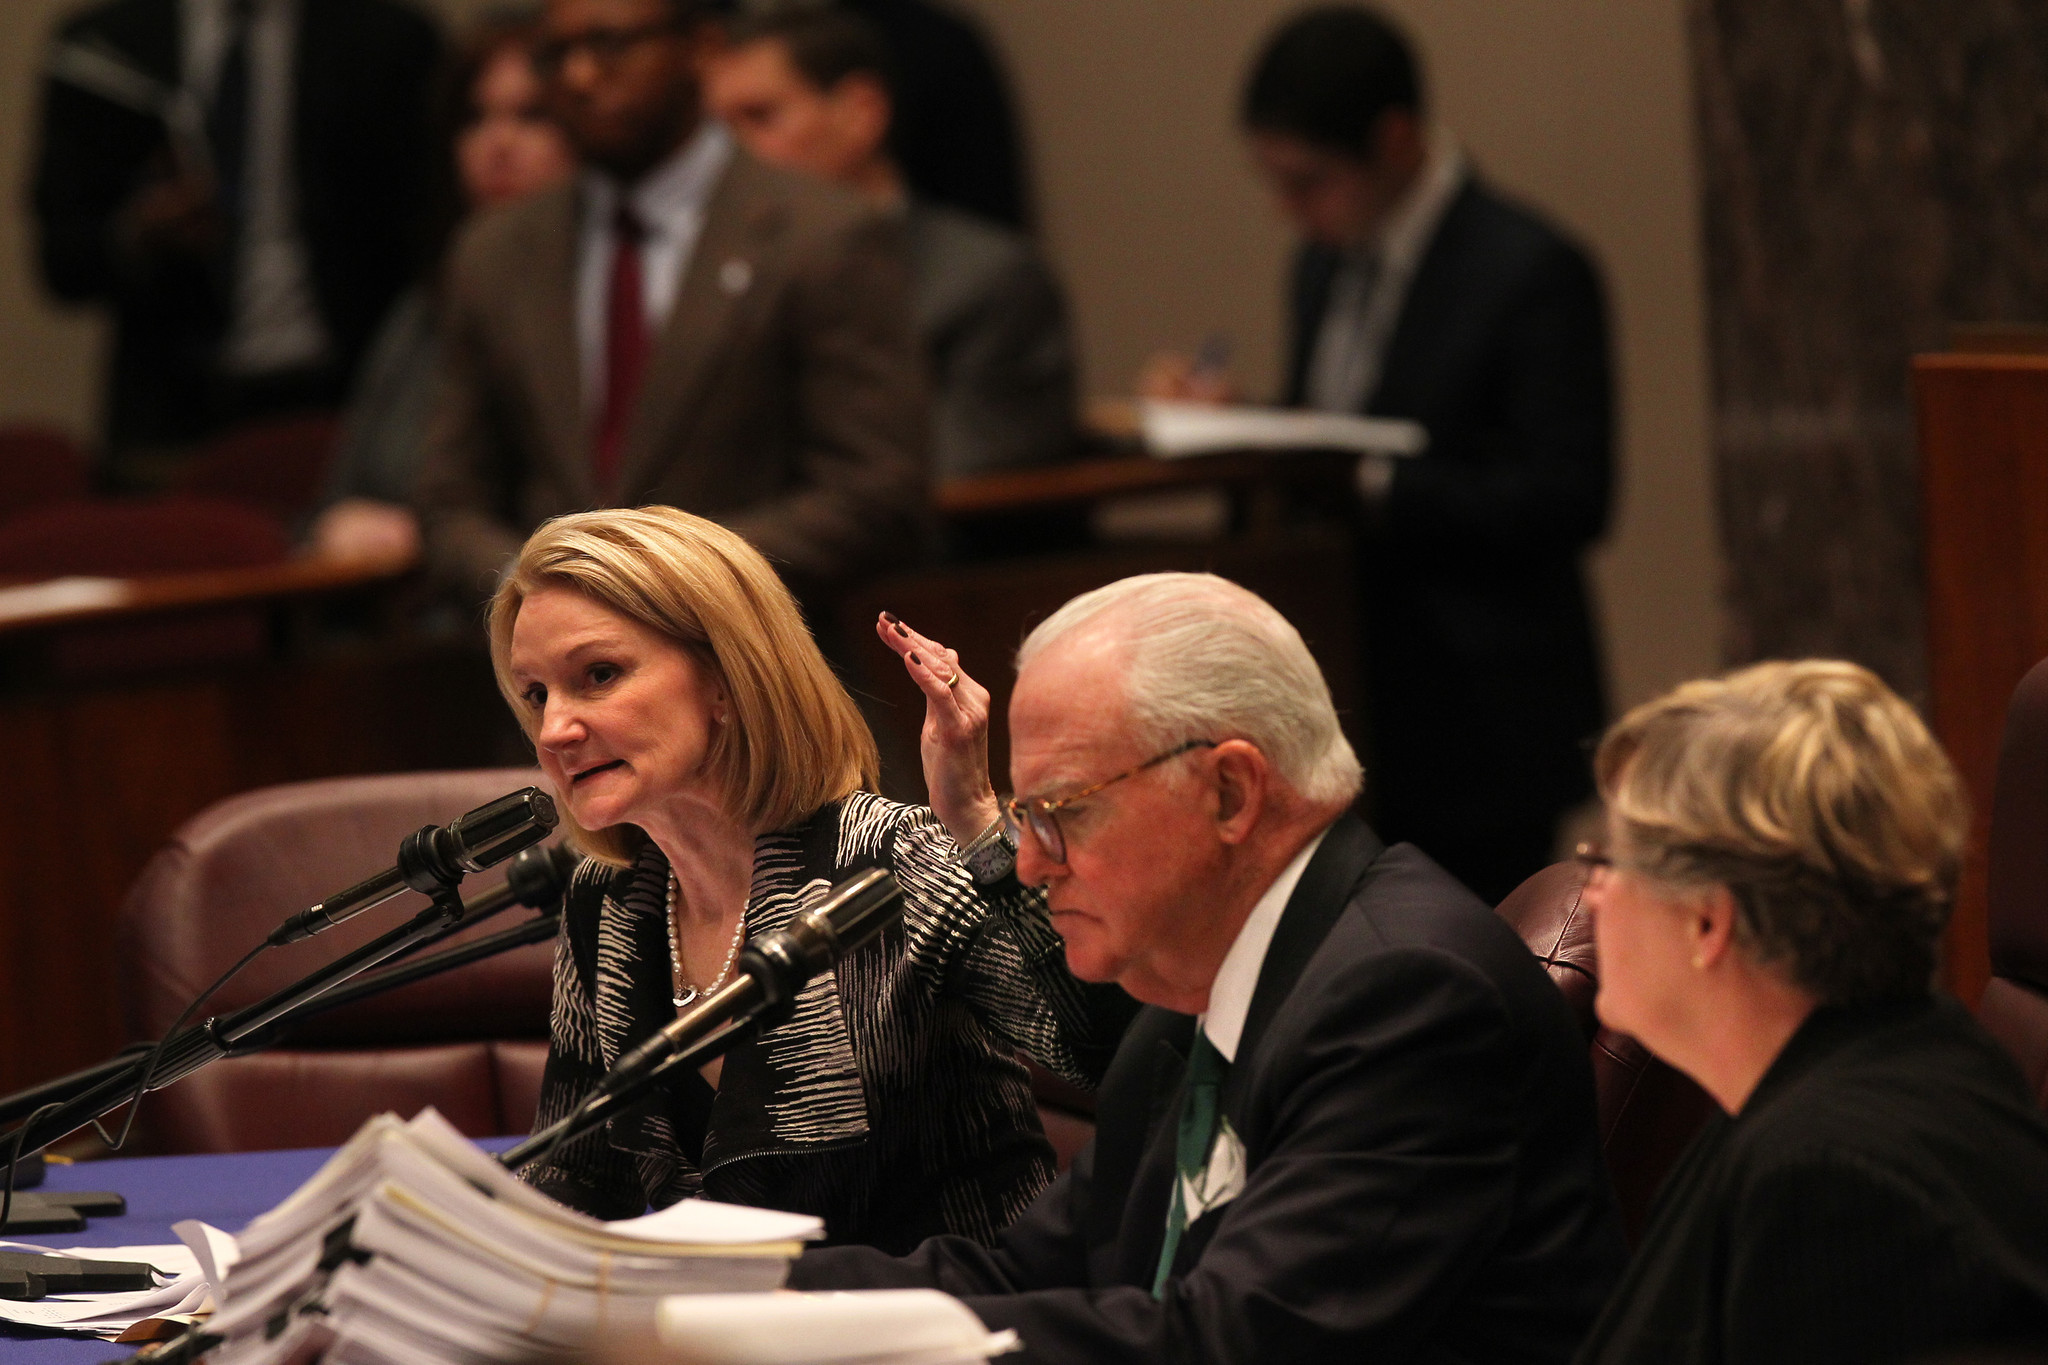 CFO Lois Scott, left, Ald. Edward Burke, 14th and Marla Kaiden, Chief Administrative Officer for the Committee on Finance Chicago City Council answer questions during a finance committee meeting in February 2014.